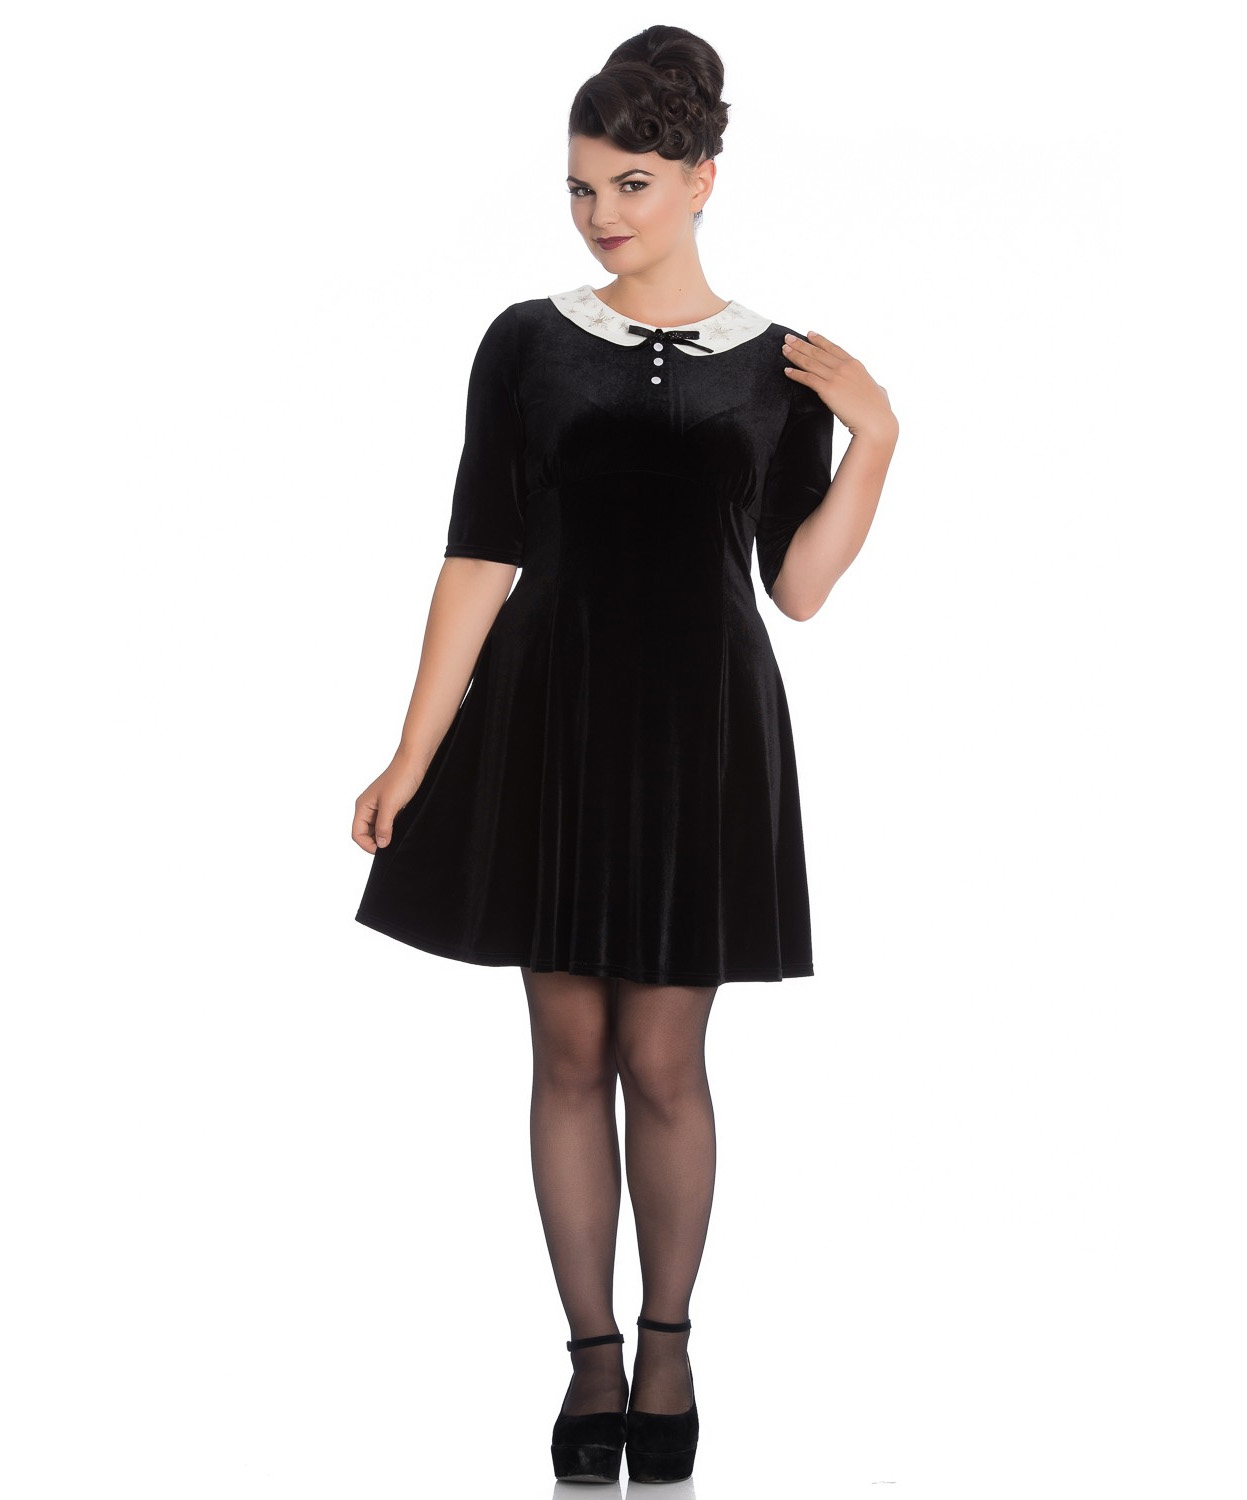 Hell-Bunny-Mini-Skater-Dress-Festive-Christmas-SNOWY-Black-Snowflakes-All-Sizes thumbnail 31